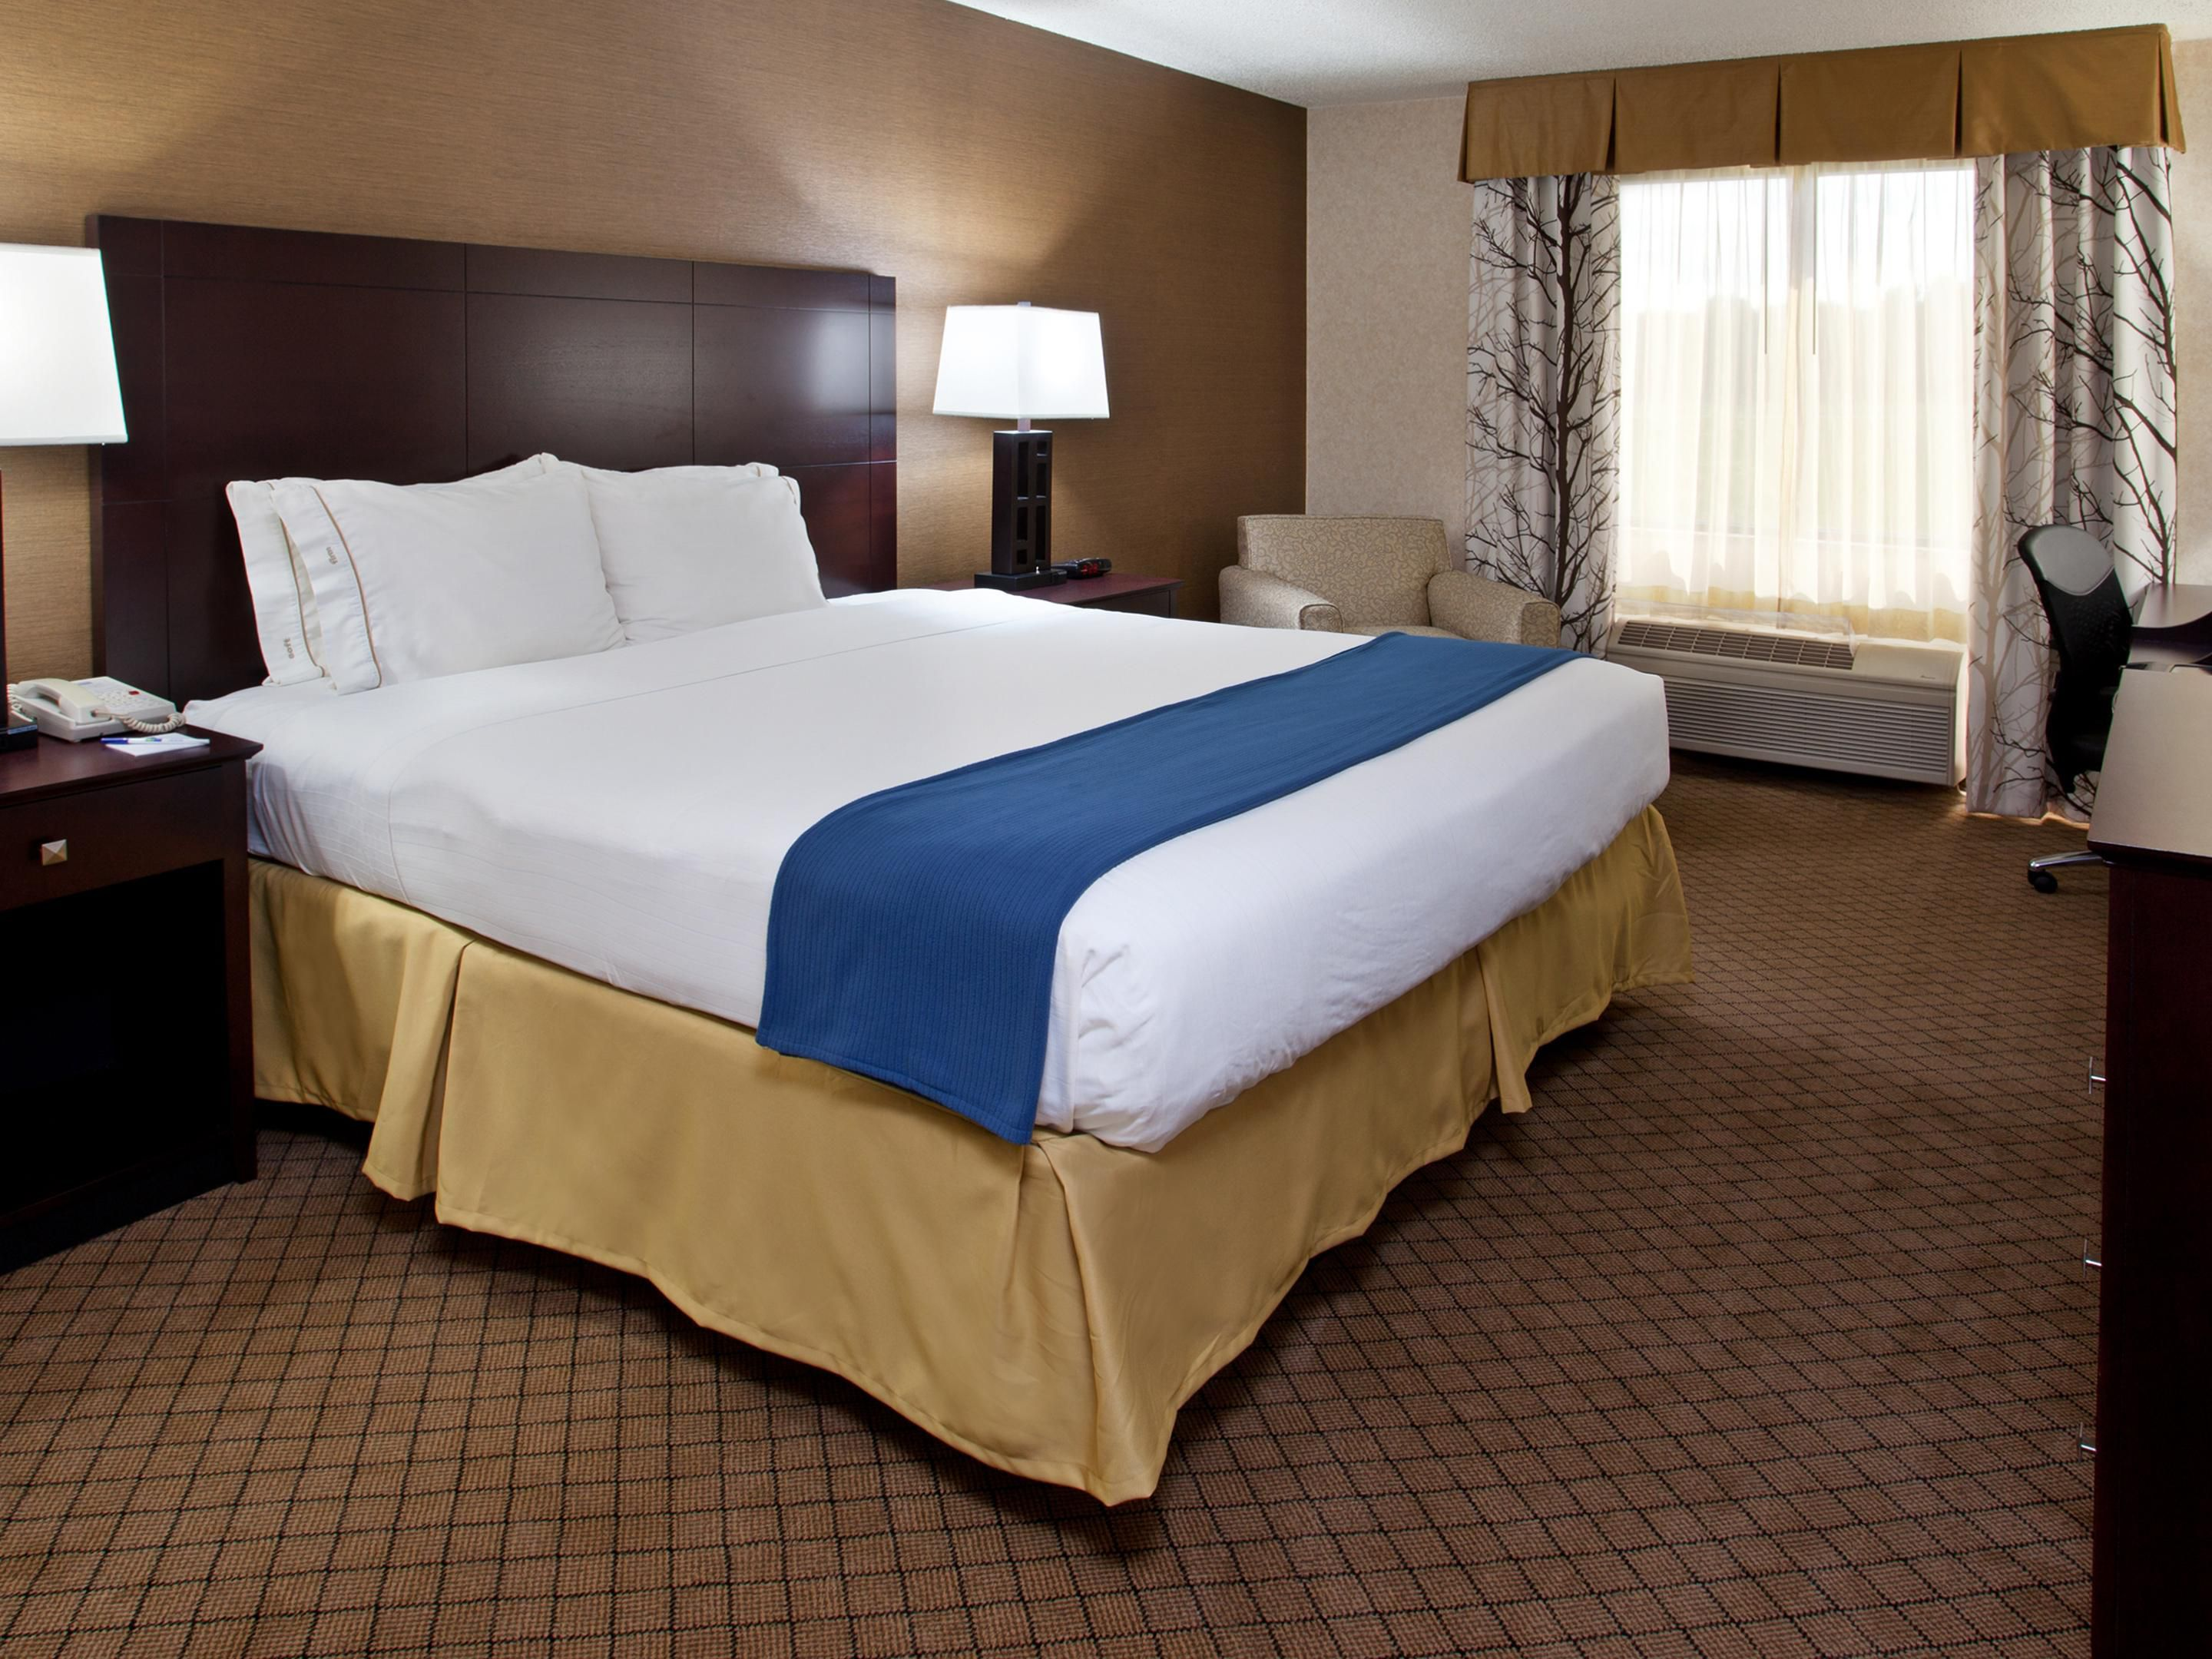 Holiday Inn Express Wadsworth One King Bed Guest Room